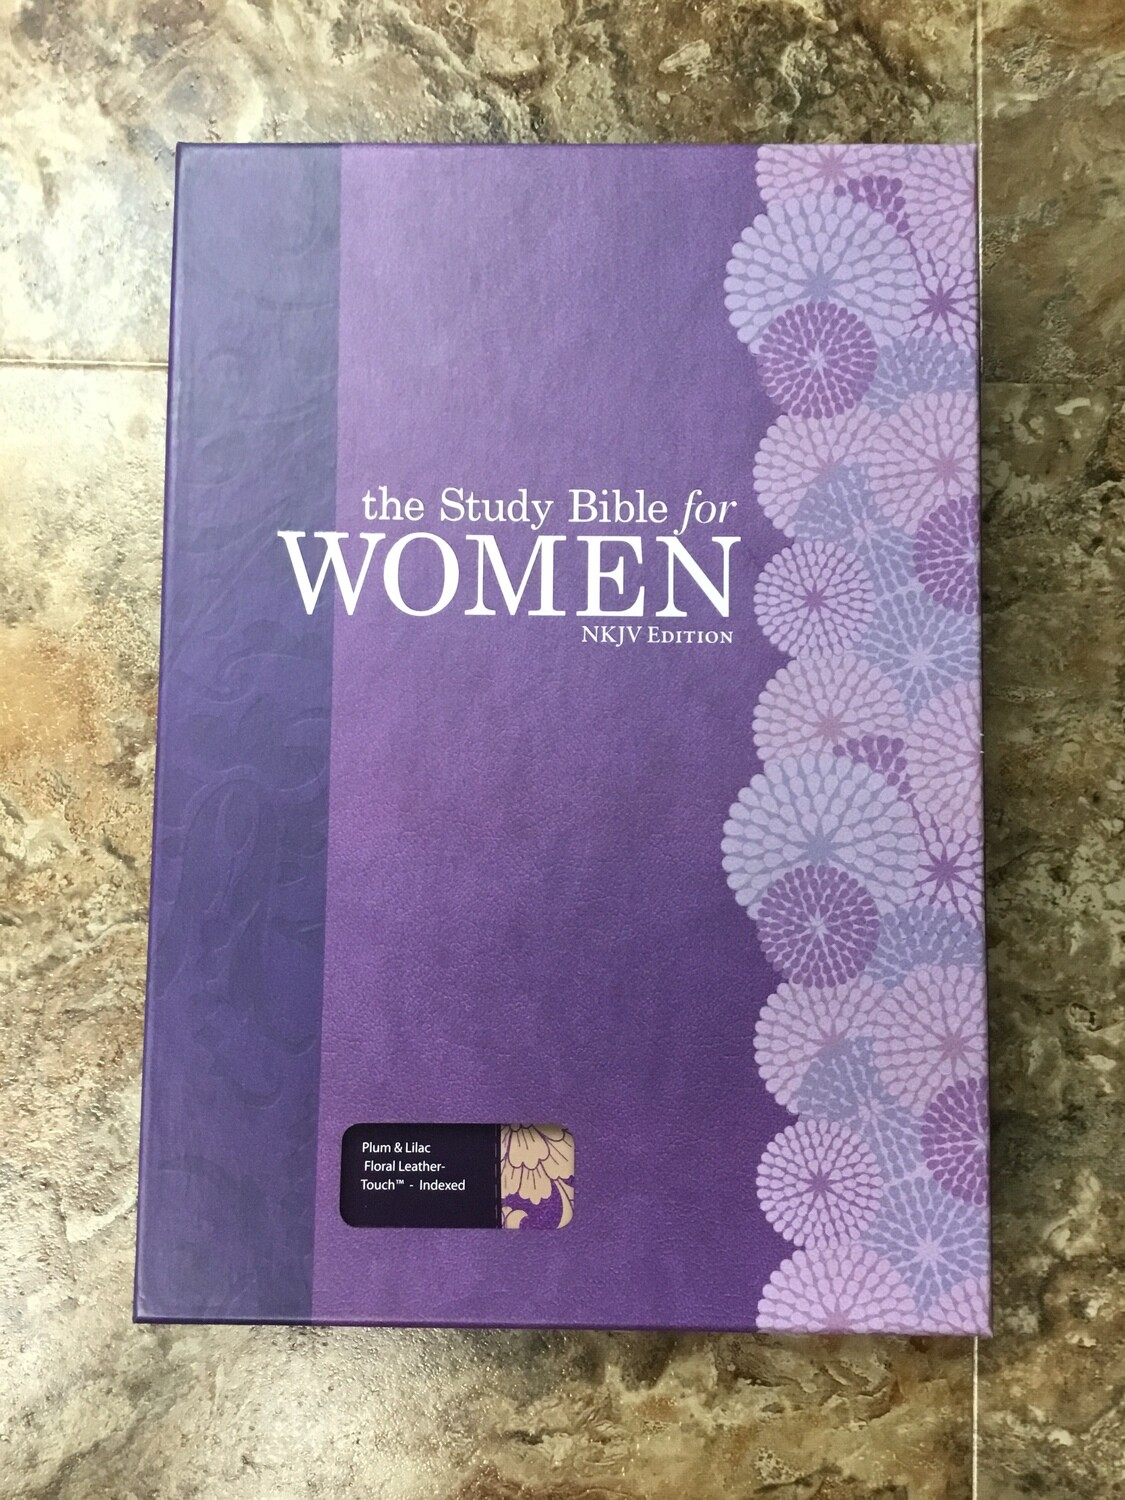 NKJV study Bible For Women Plum And Lilac Indexed